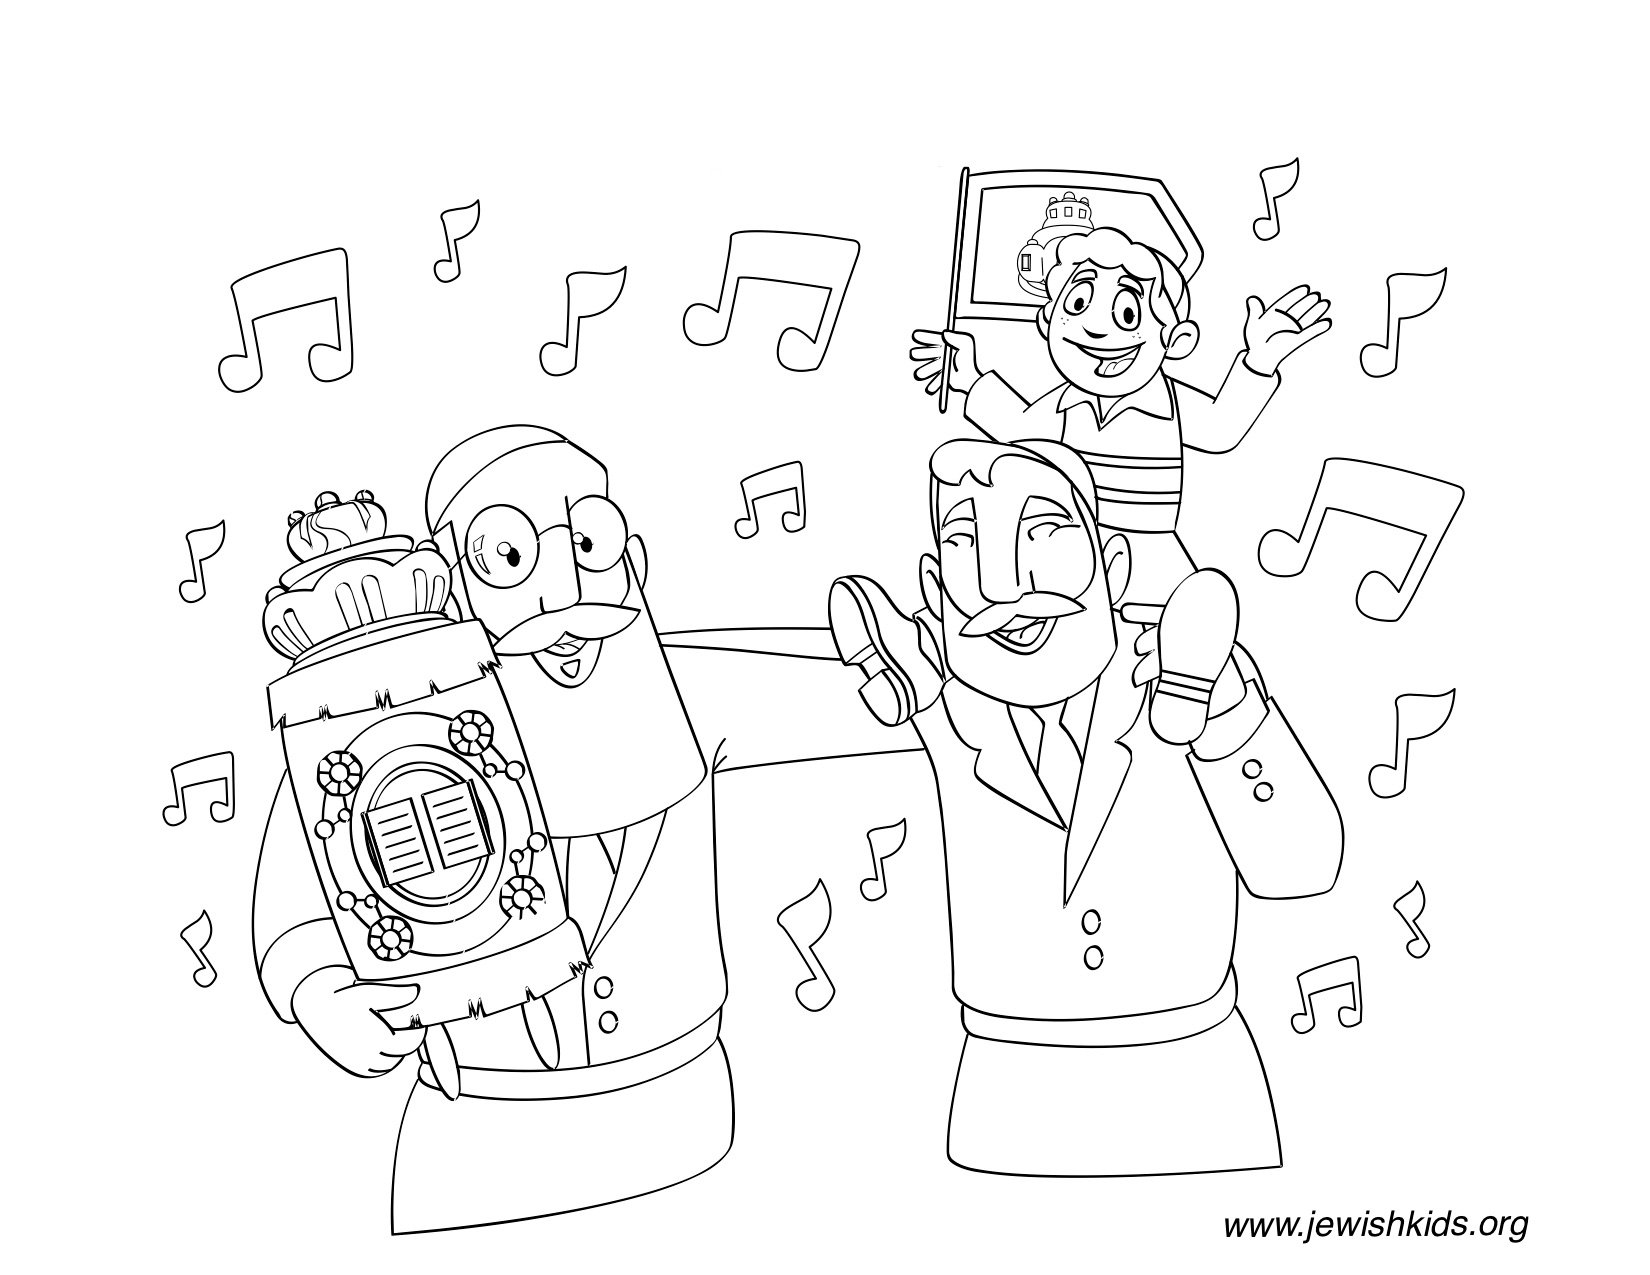 Simchat Torah Coloring Pages Crafts Coloring Pages Jewish Kids